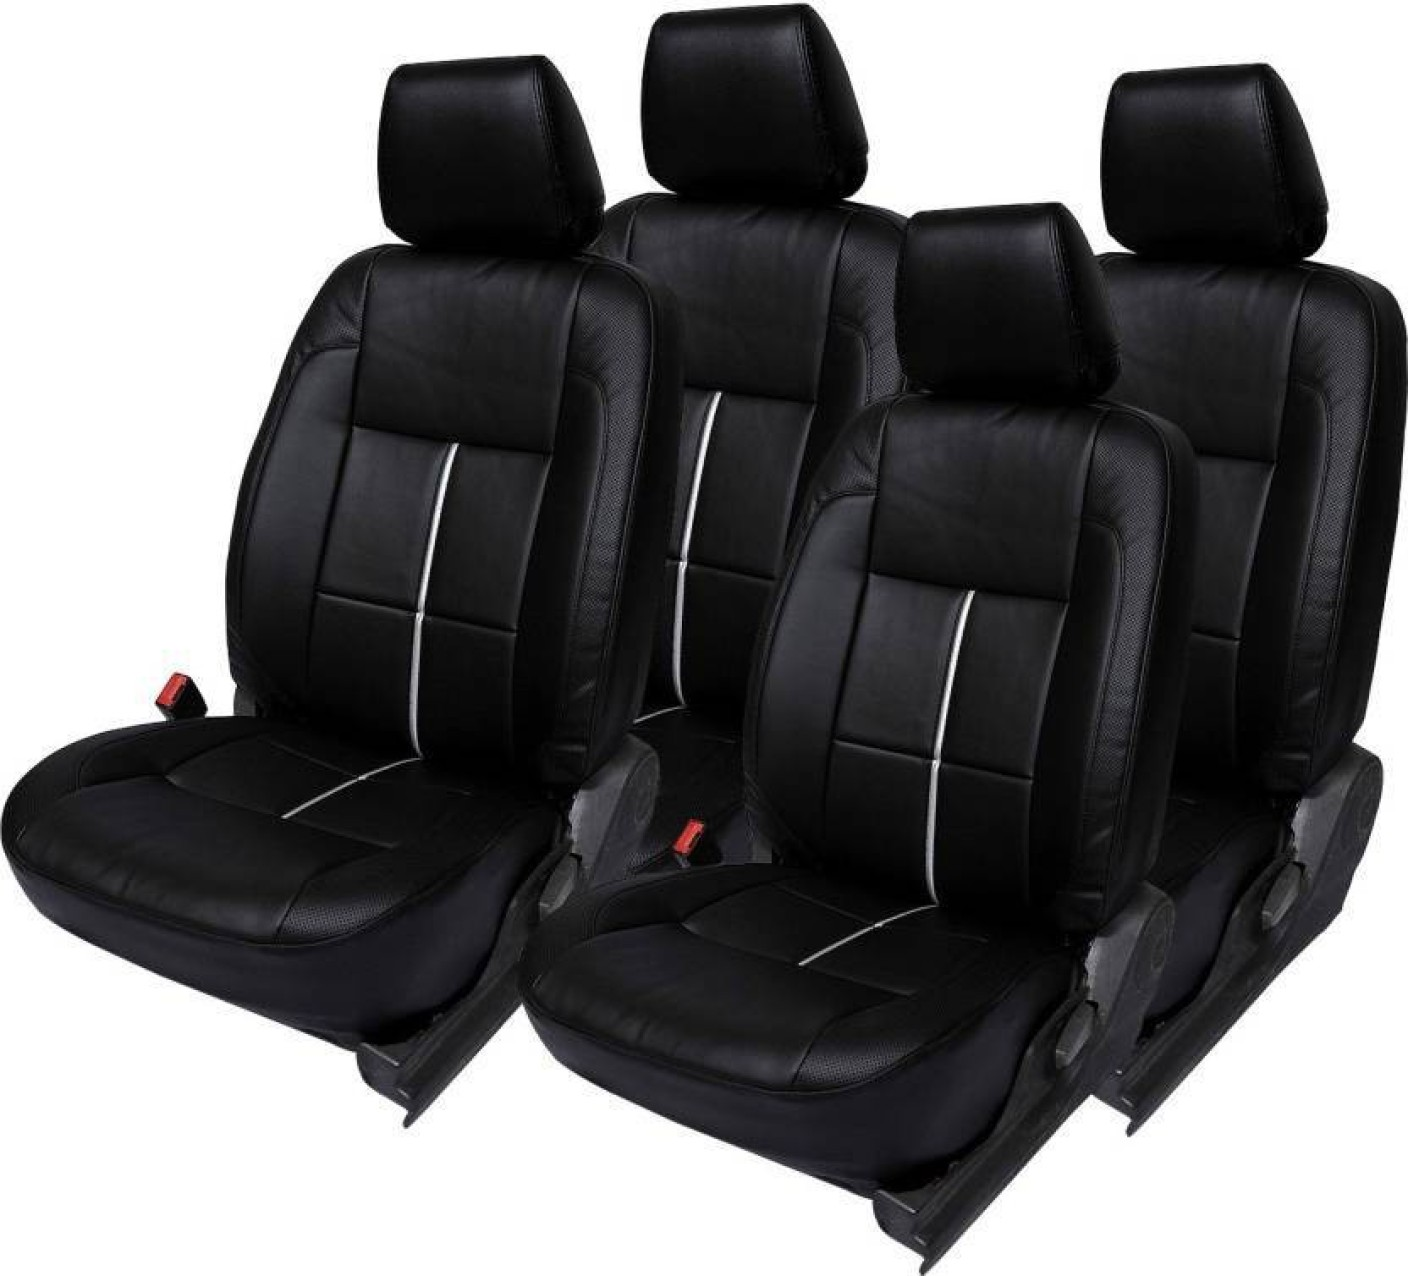 Bhati PU Leather Car Seat Cover For Mahindra KUV 100 Price